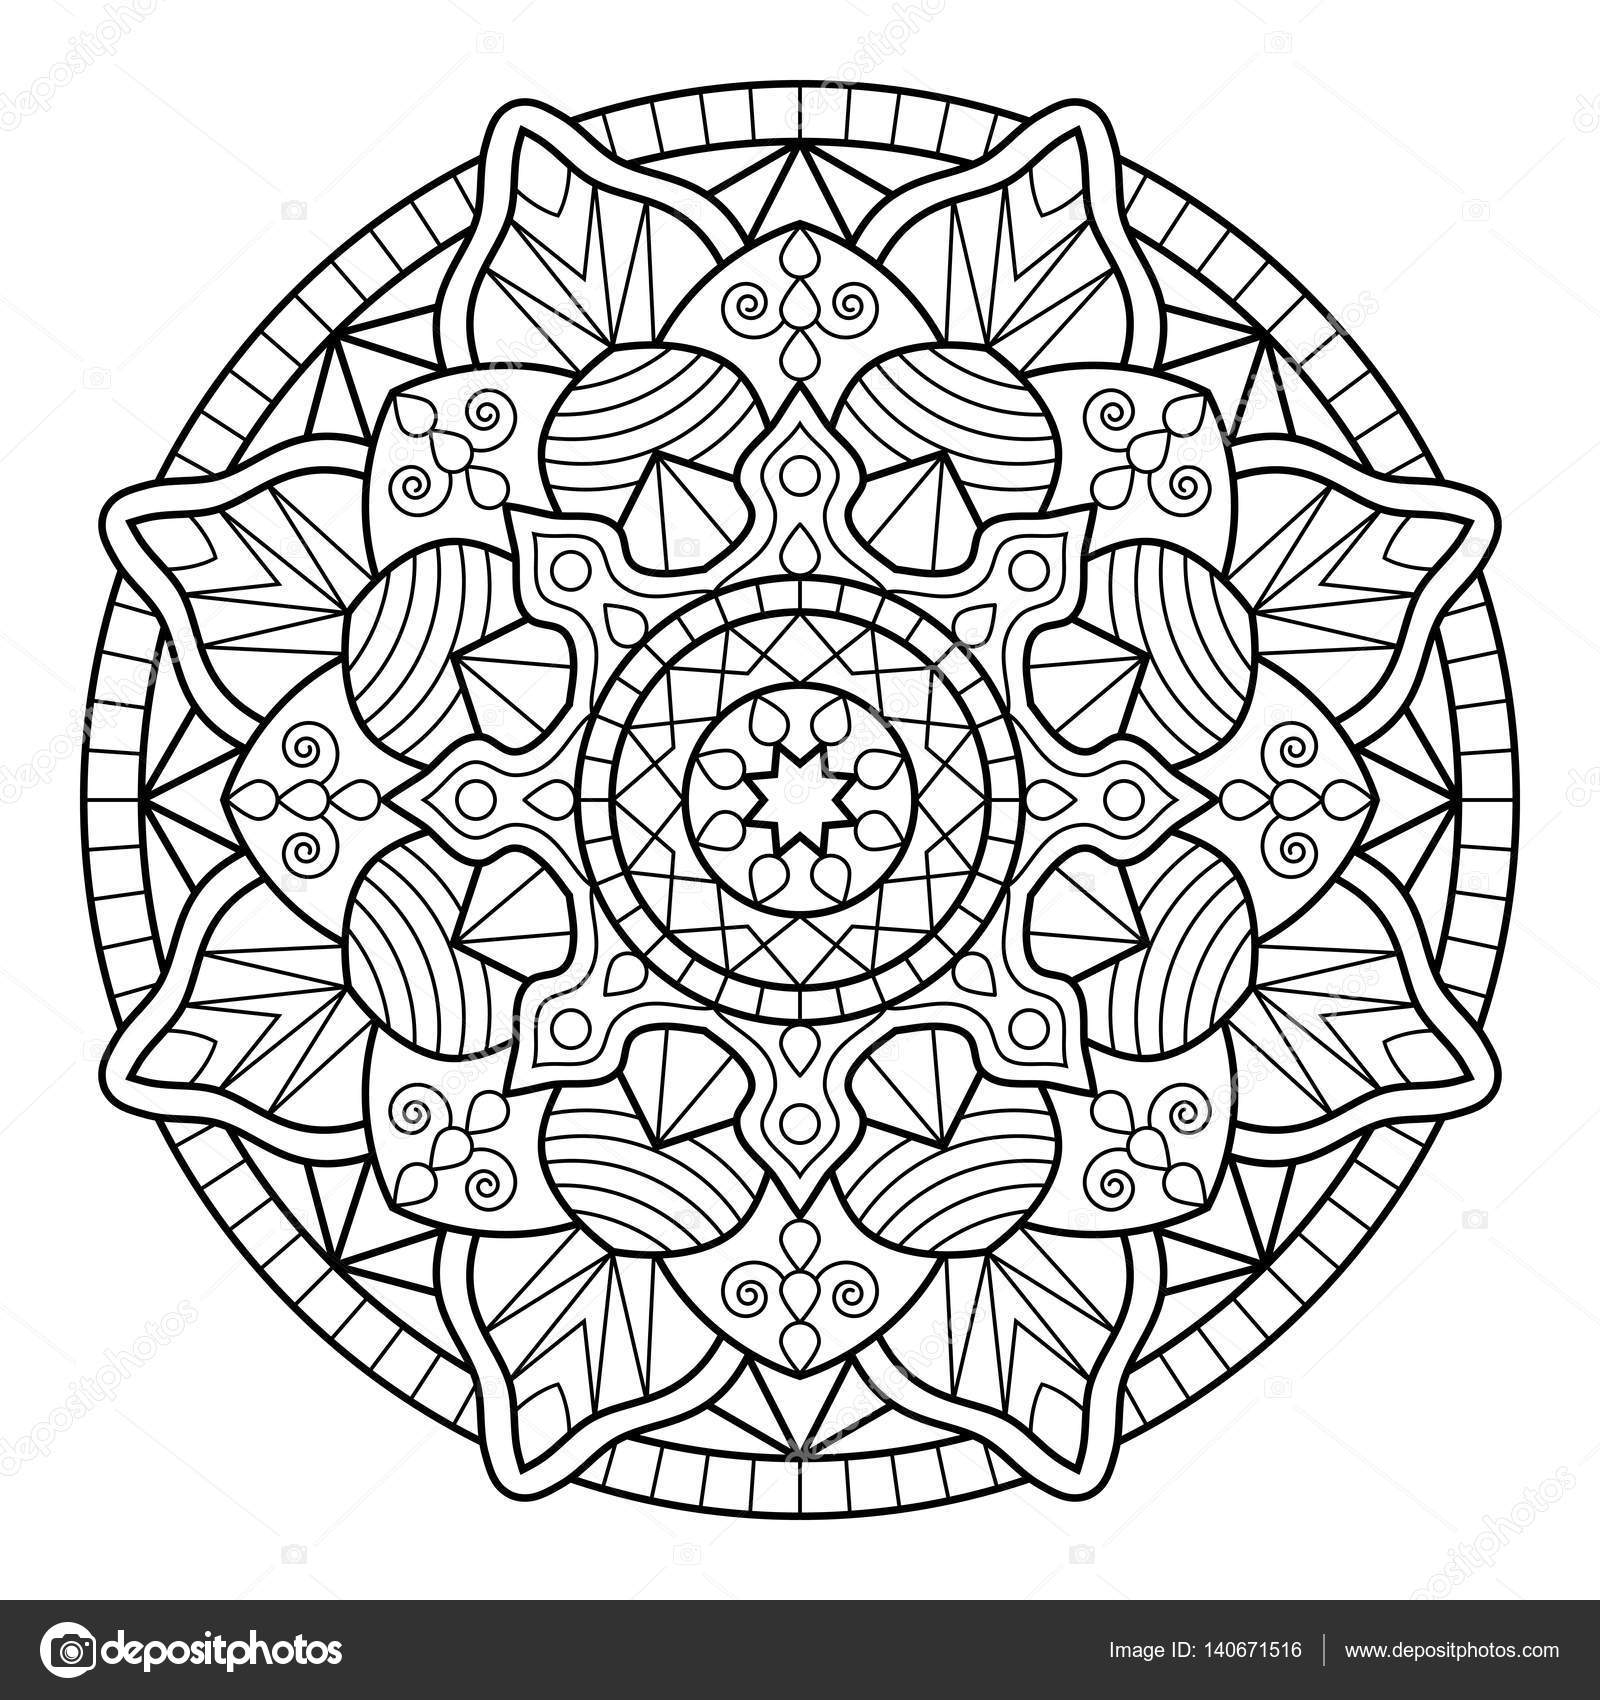 Mandala Coloring Book Pages Stock Vector C Jelisua88 140671516